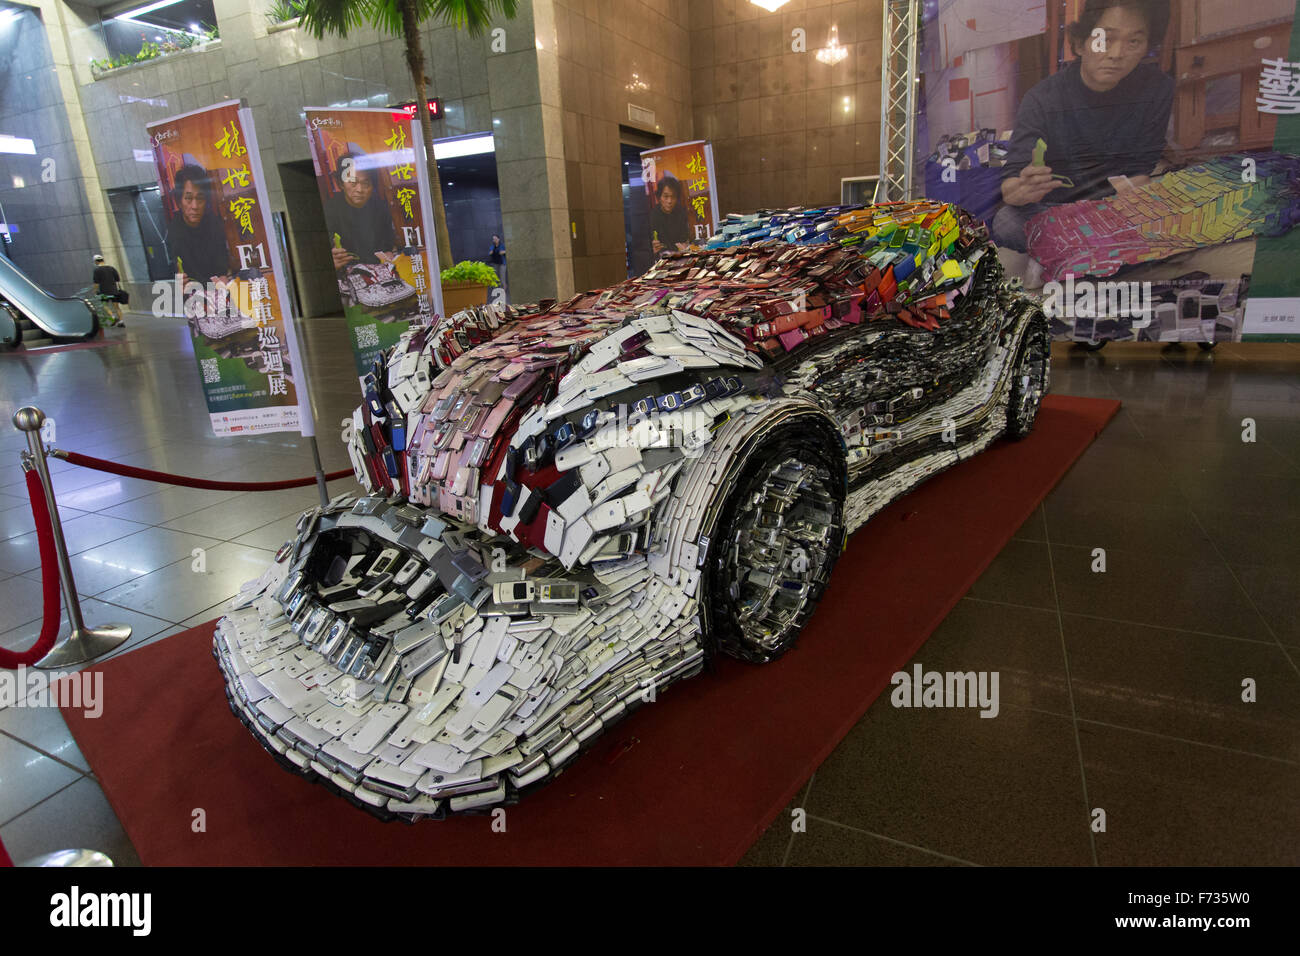 car made with cellphone taipei city hall display - Stock Image